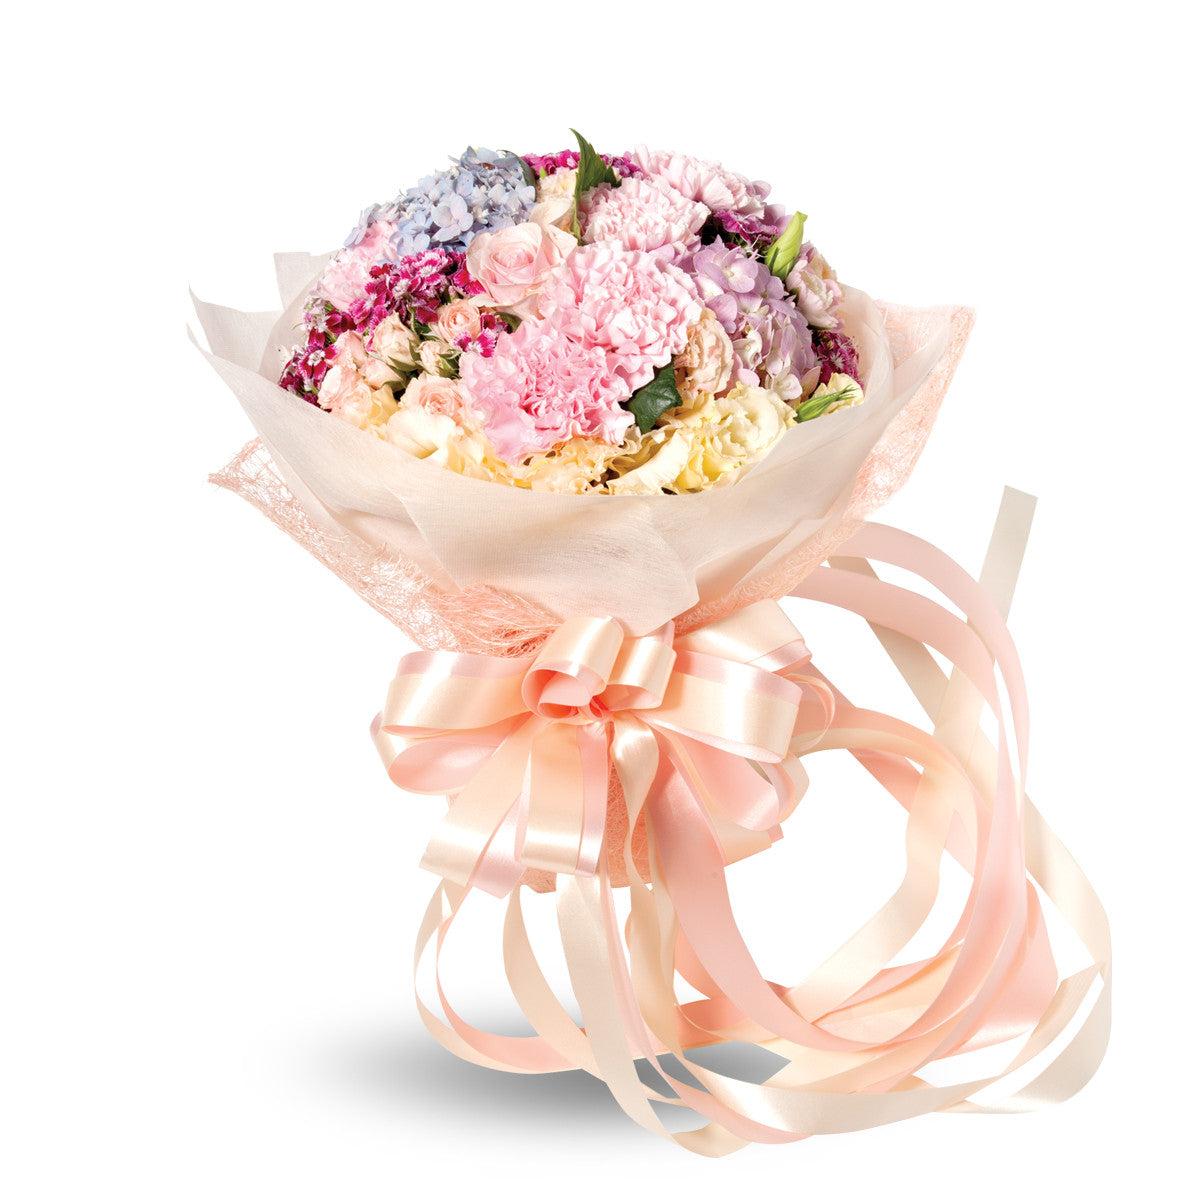 Adorable Flora Bouquet - April Flora